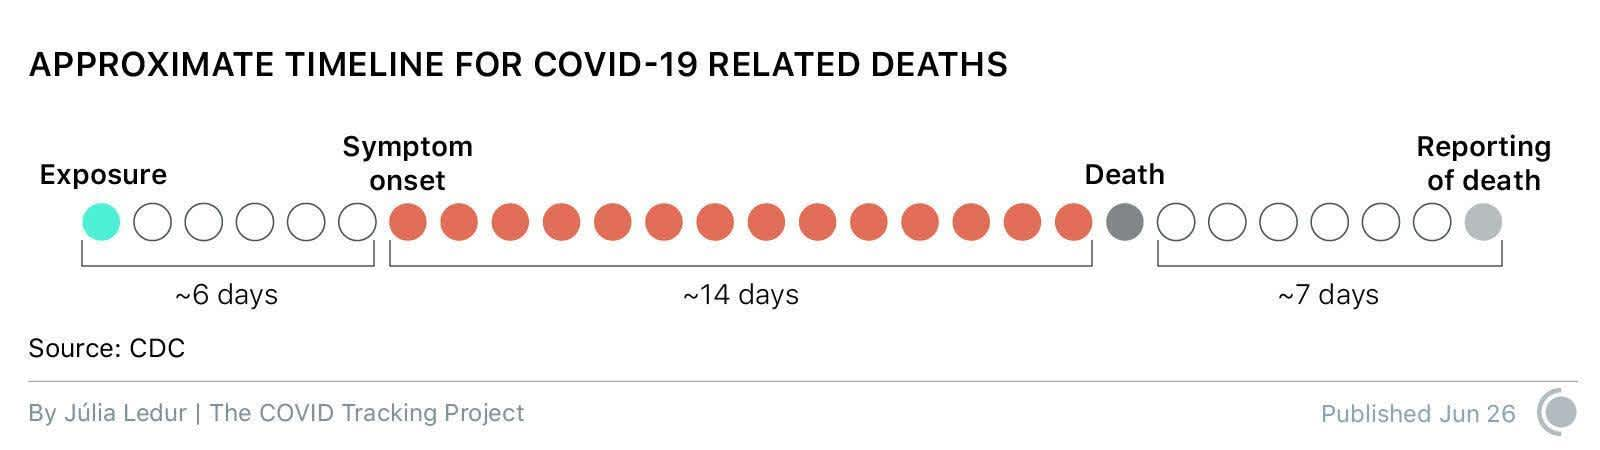 Approximate timeline for COVID-19 related deaths, from exposure to symptom onset to death to reporting on the death.